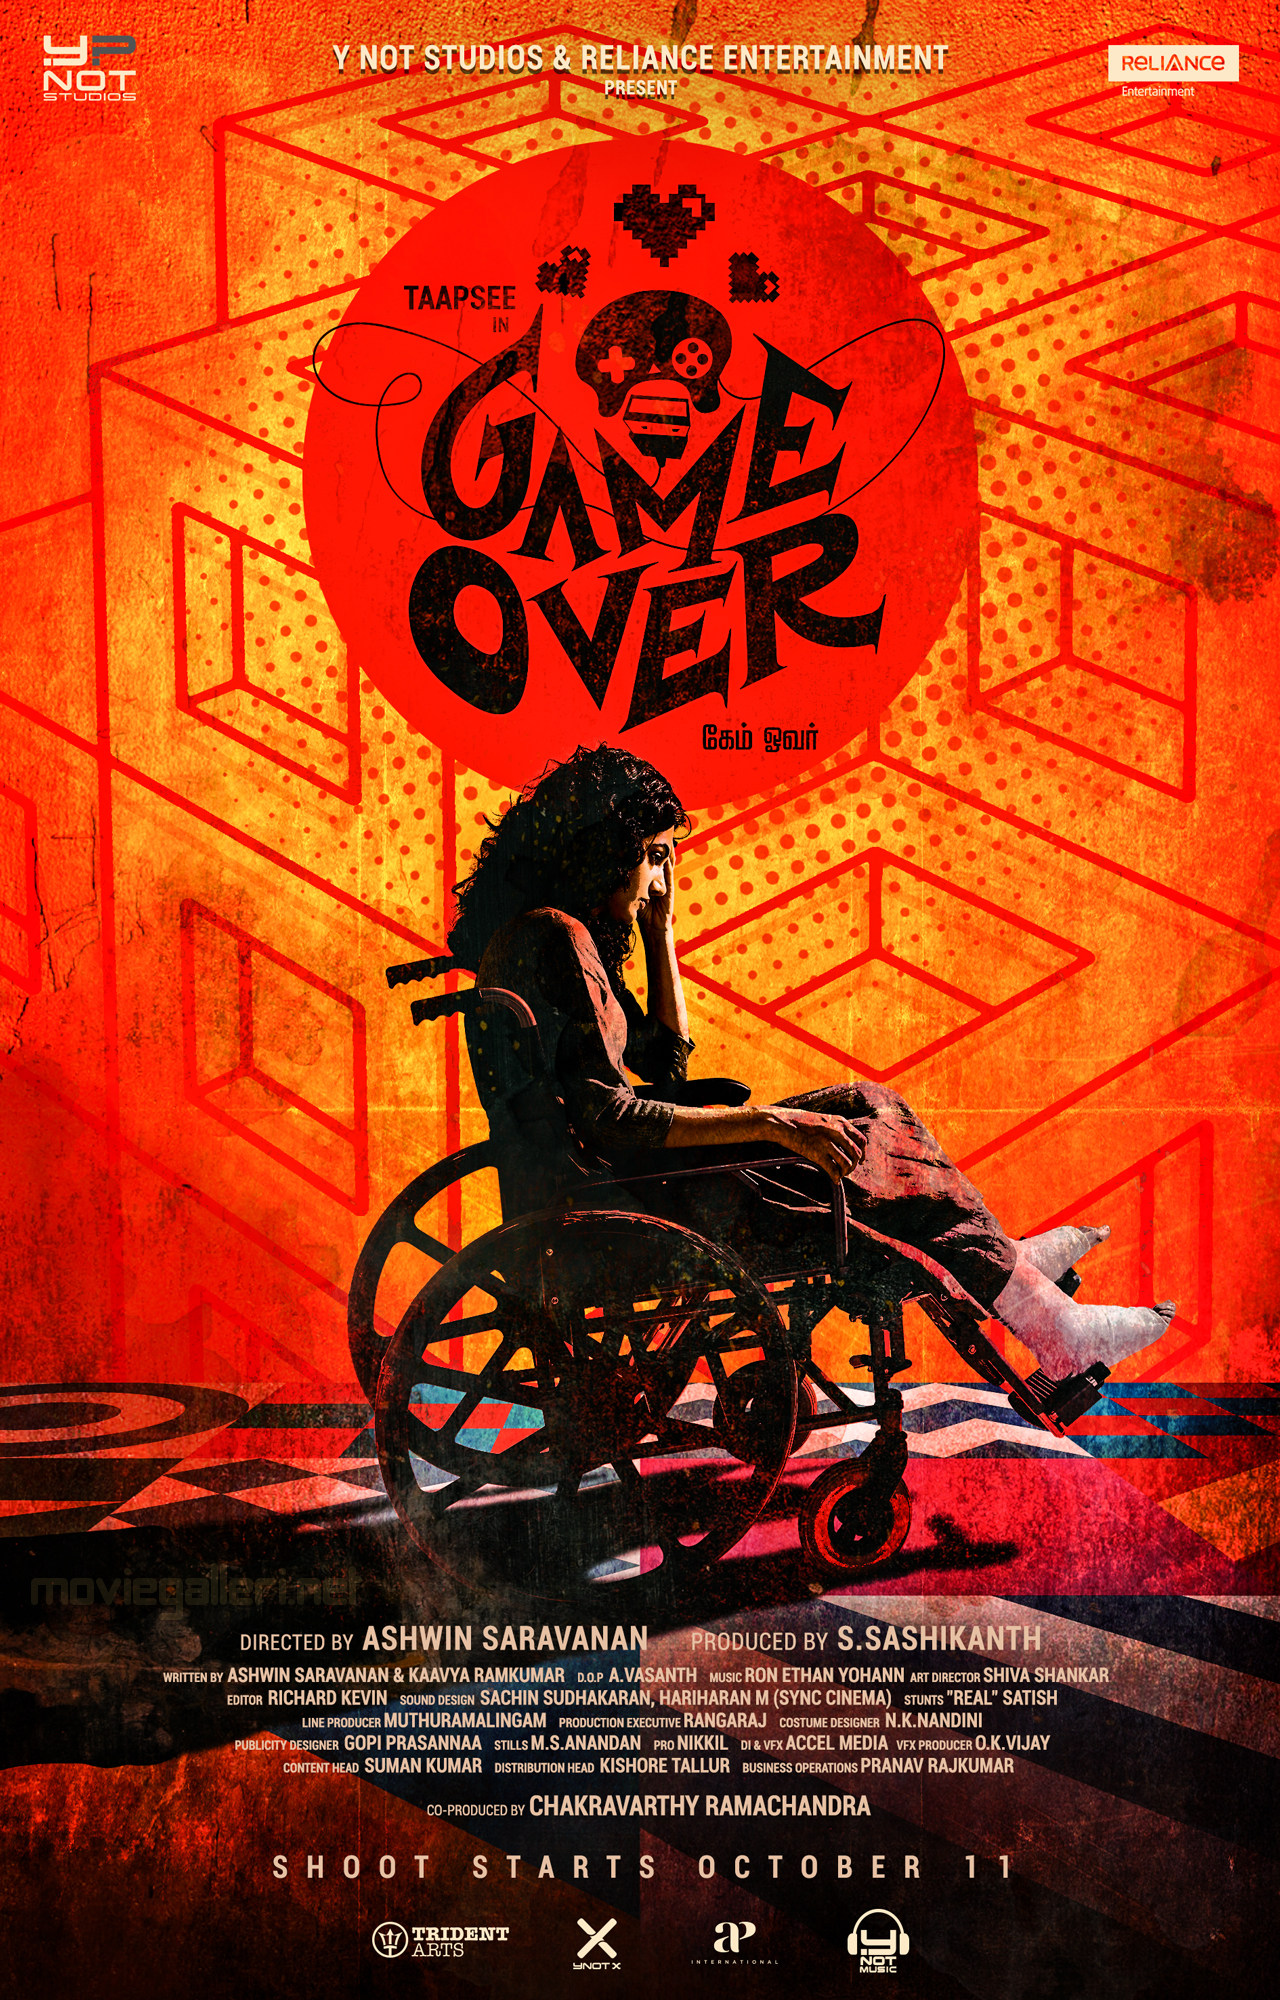 Actress Taapsee Game Over First Look Poster HD